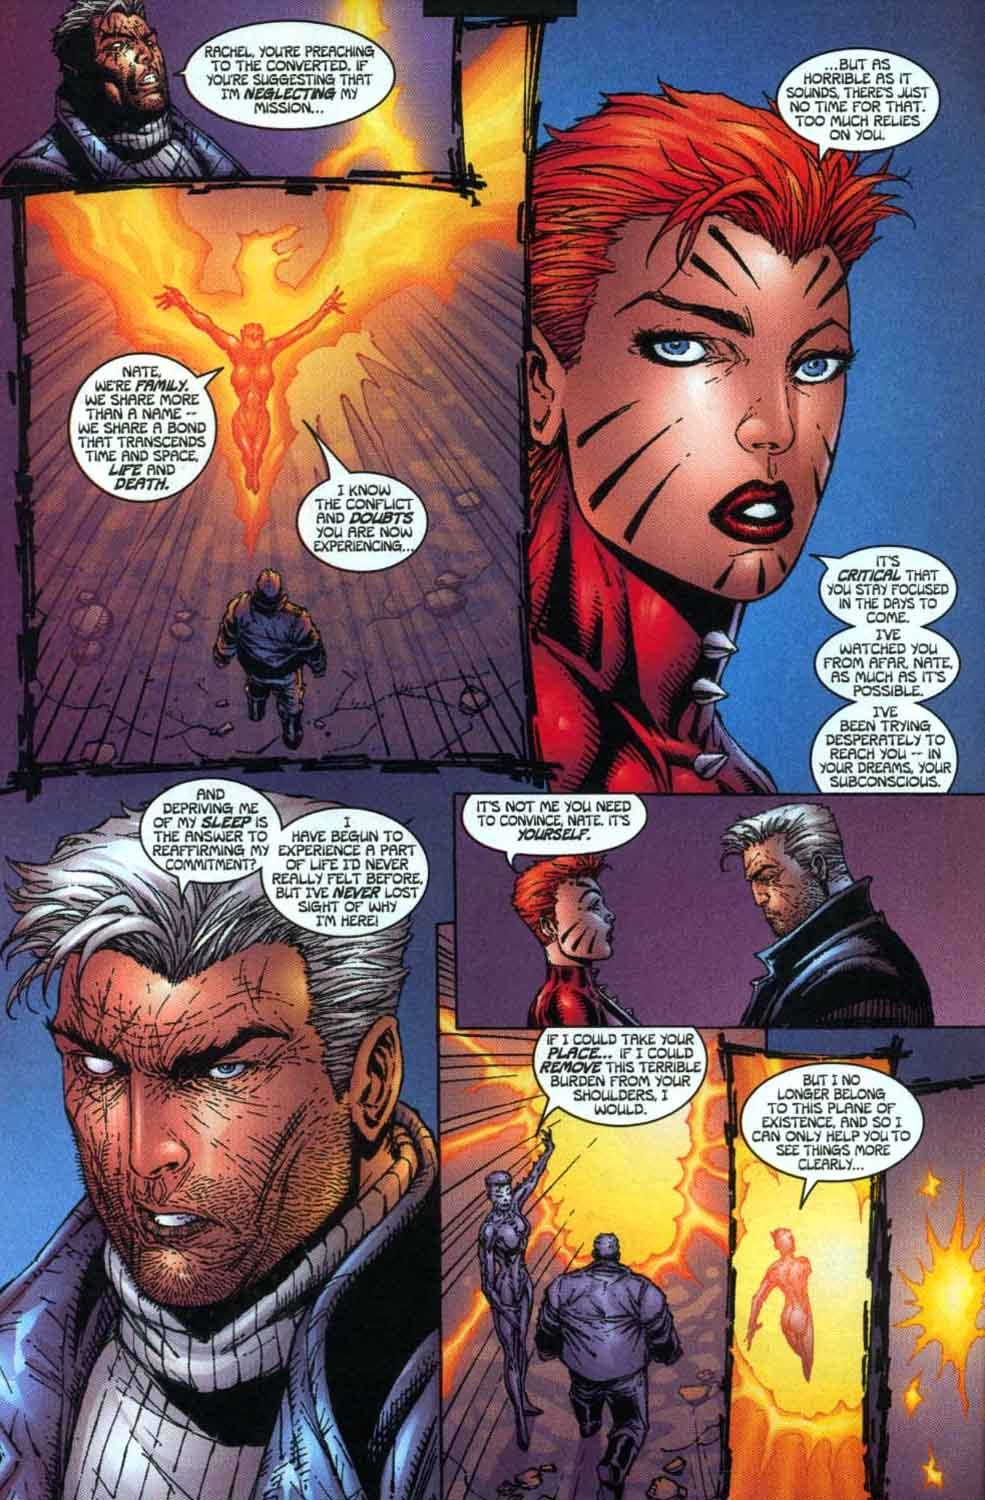 Tells Cable she can't help him because she no longer belongs to the same plane of existence